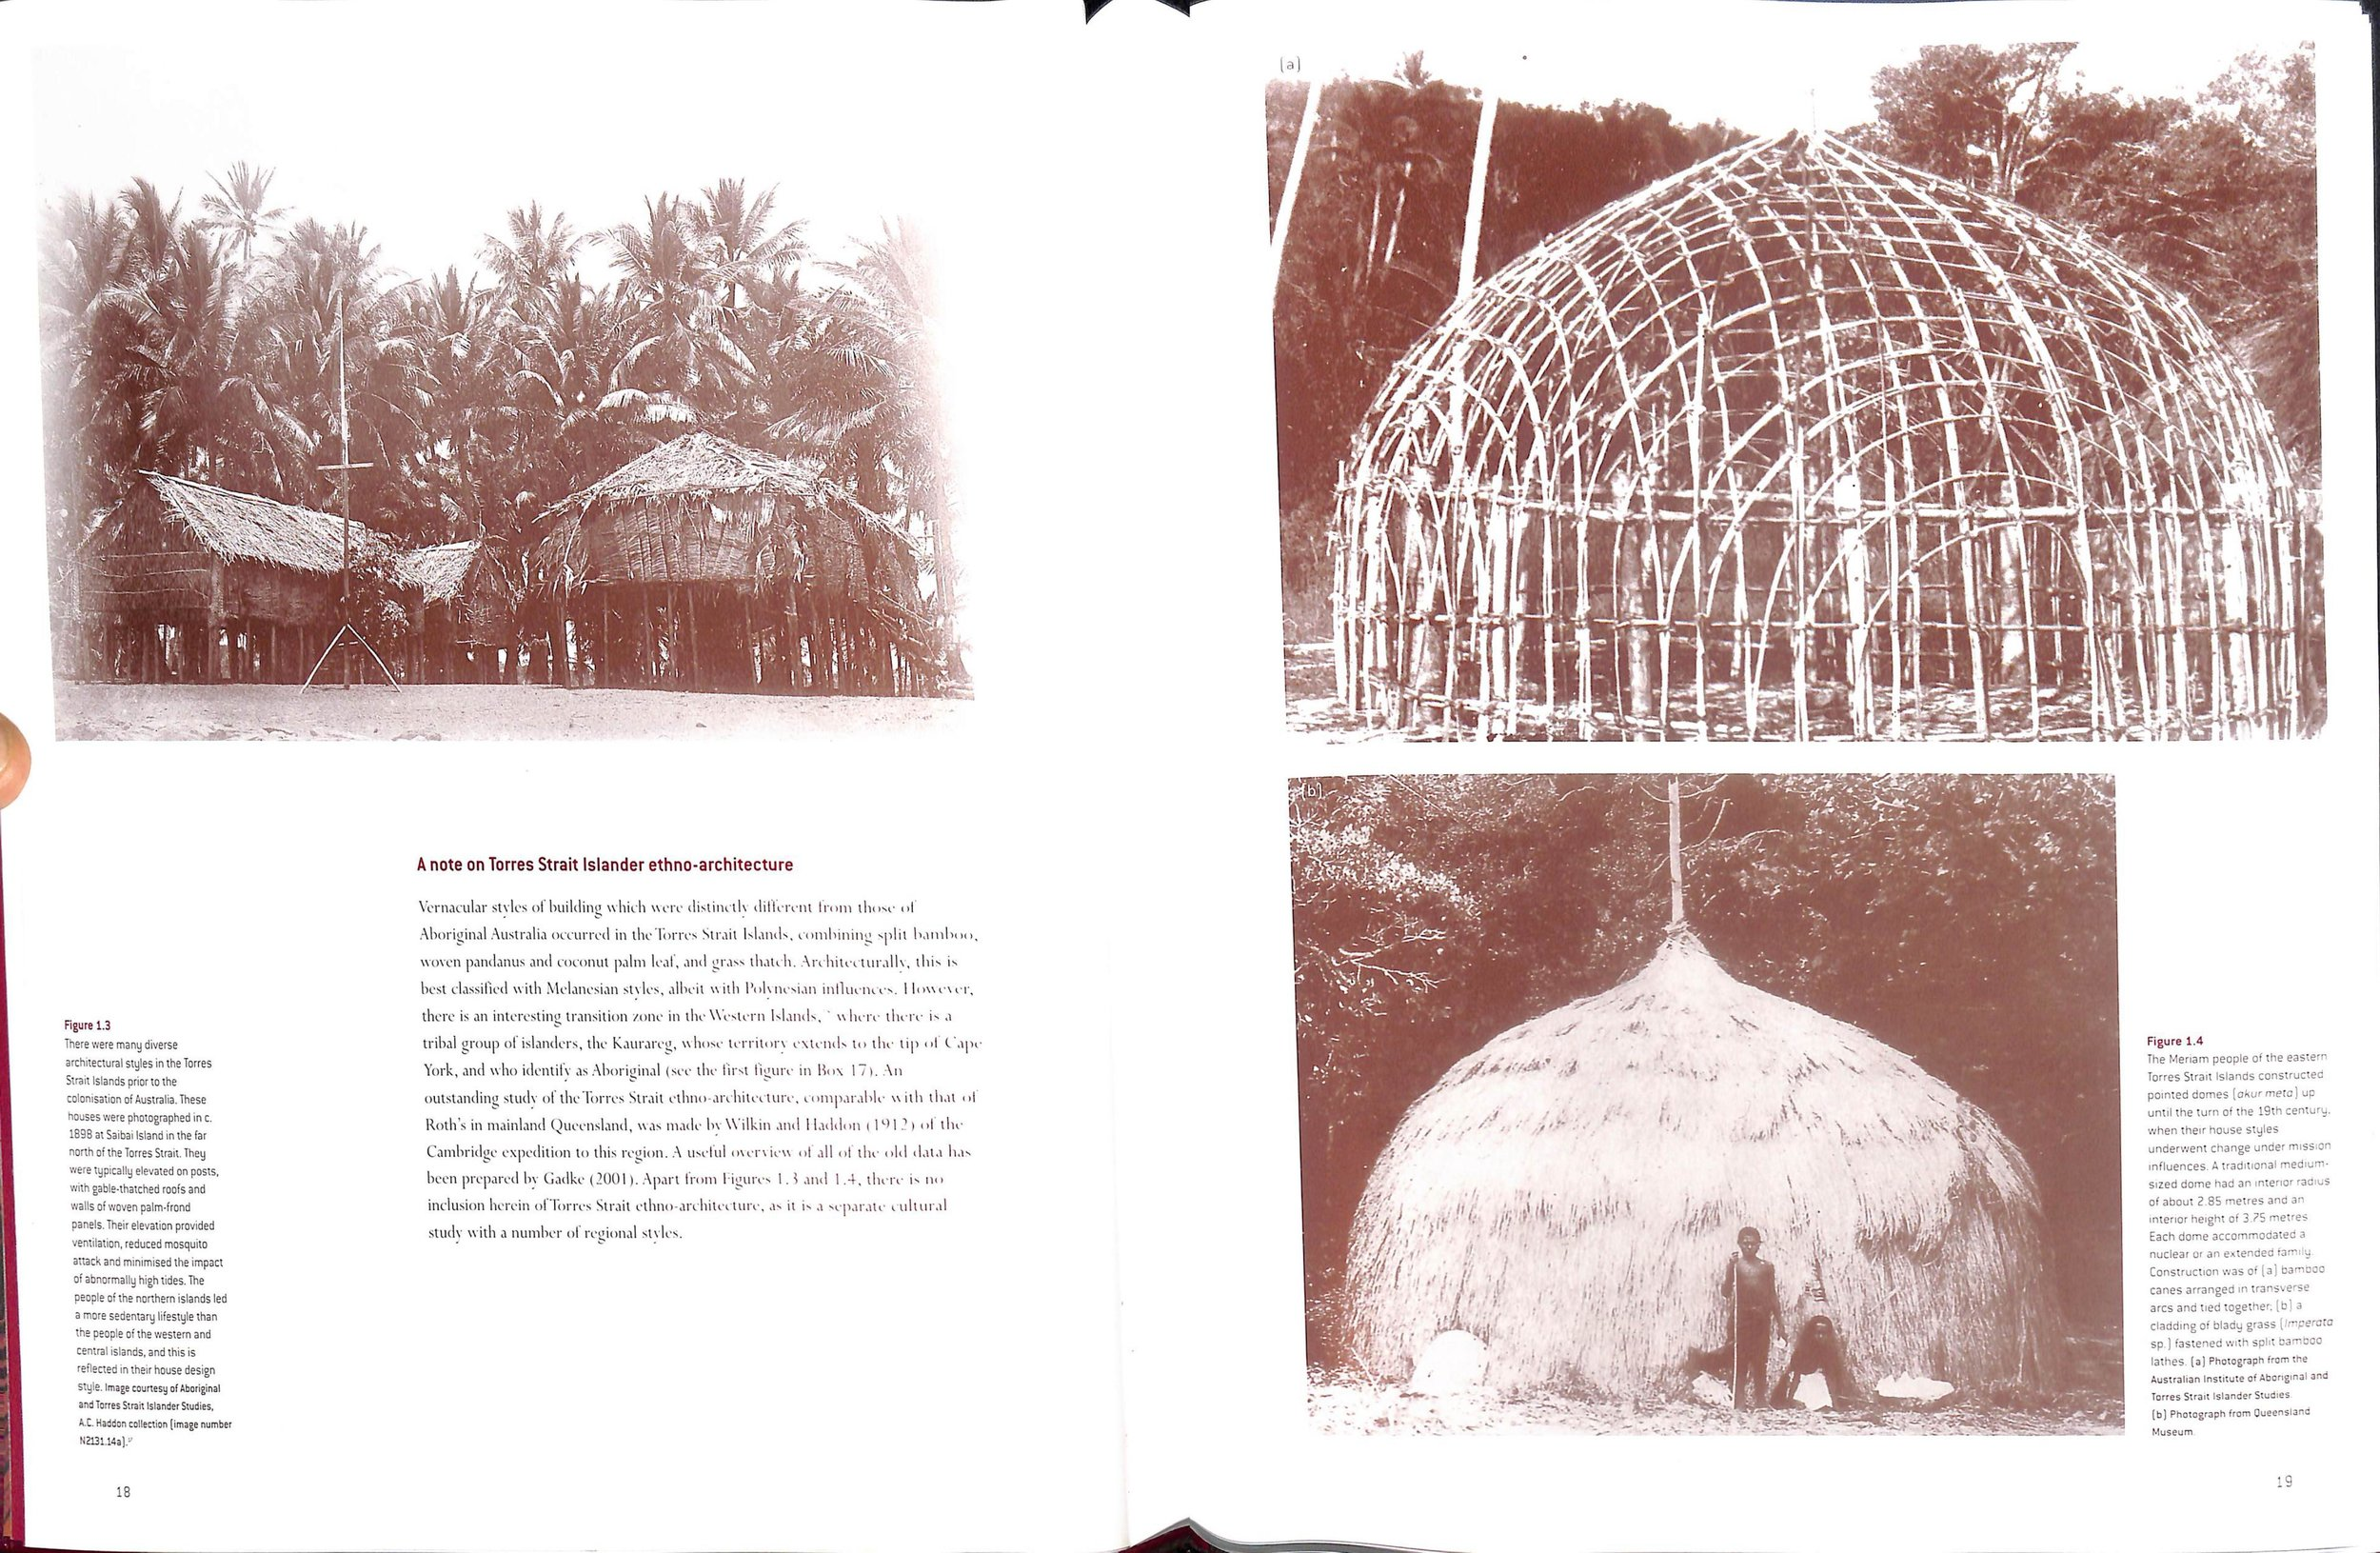 Figure 1.4 (a) & (b) : Torres Strait Island Pointed Domes of Melanesian Style with Polynesian influences.